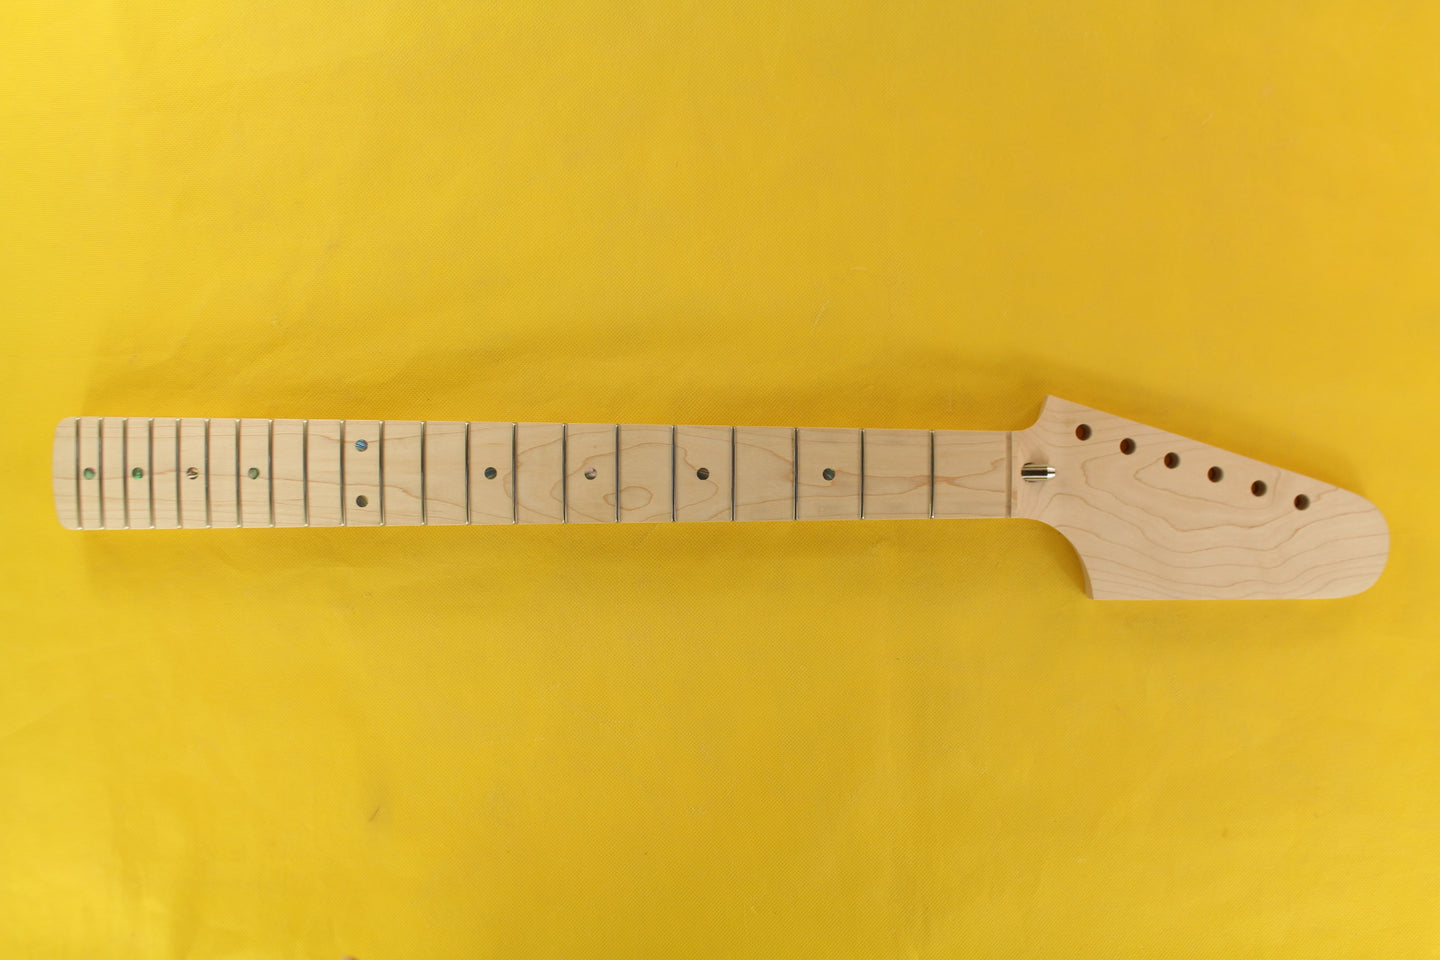 SC Maple Guitar Neck - 701860